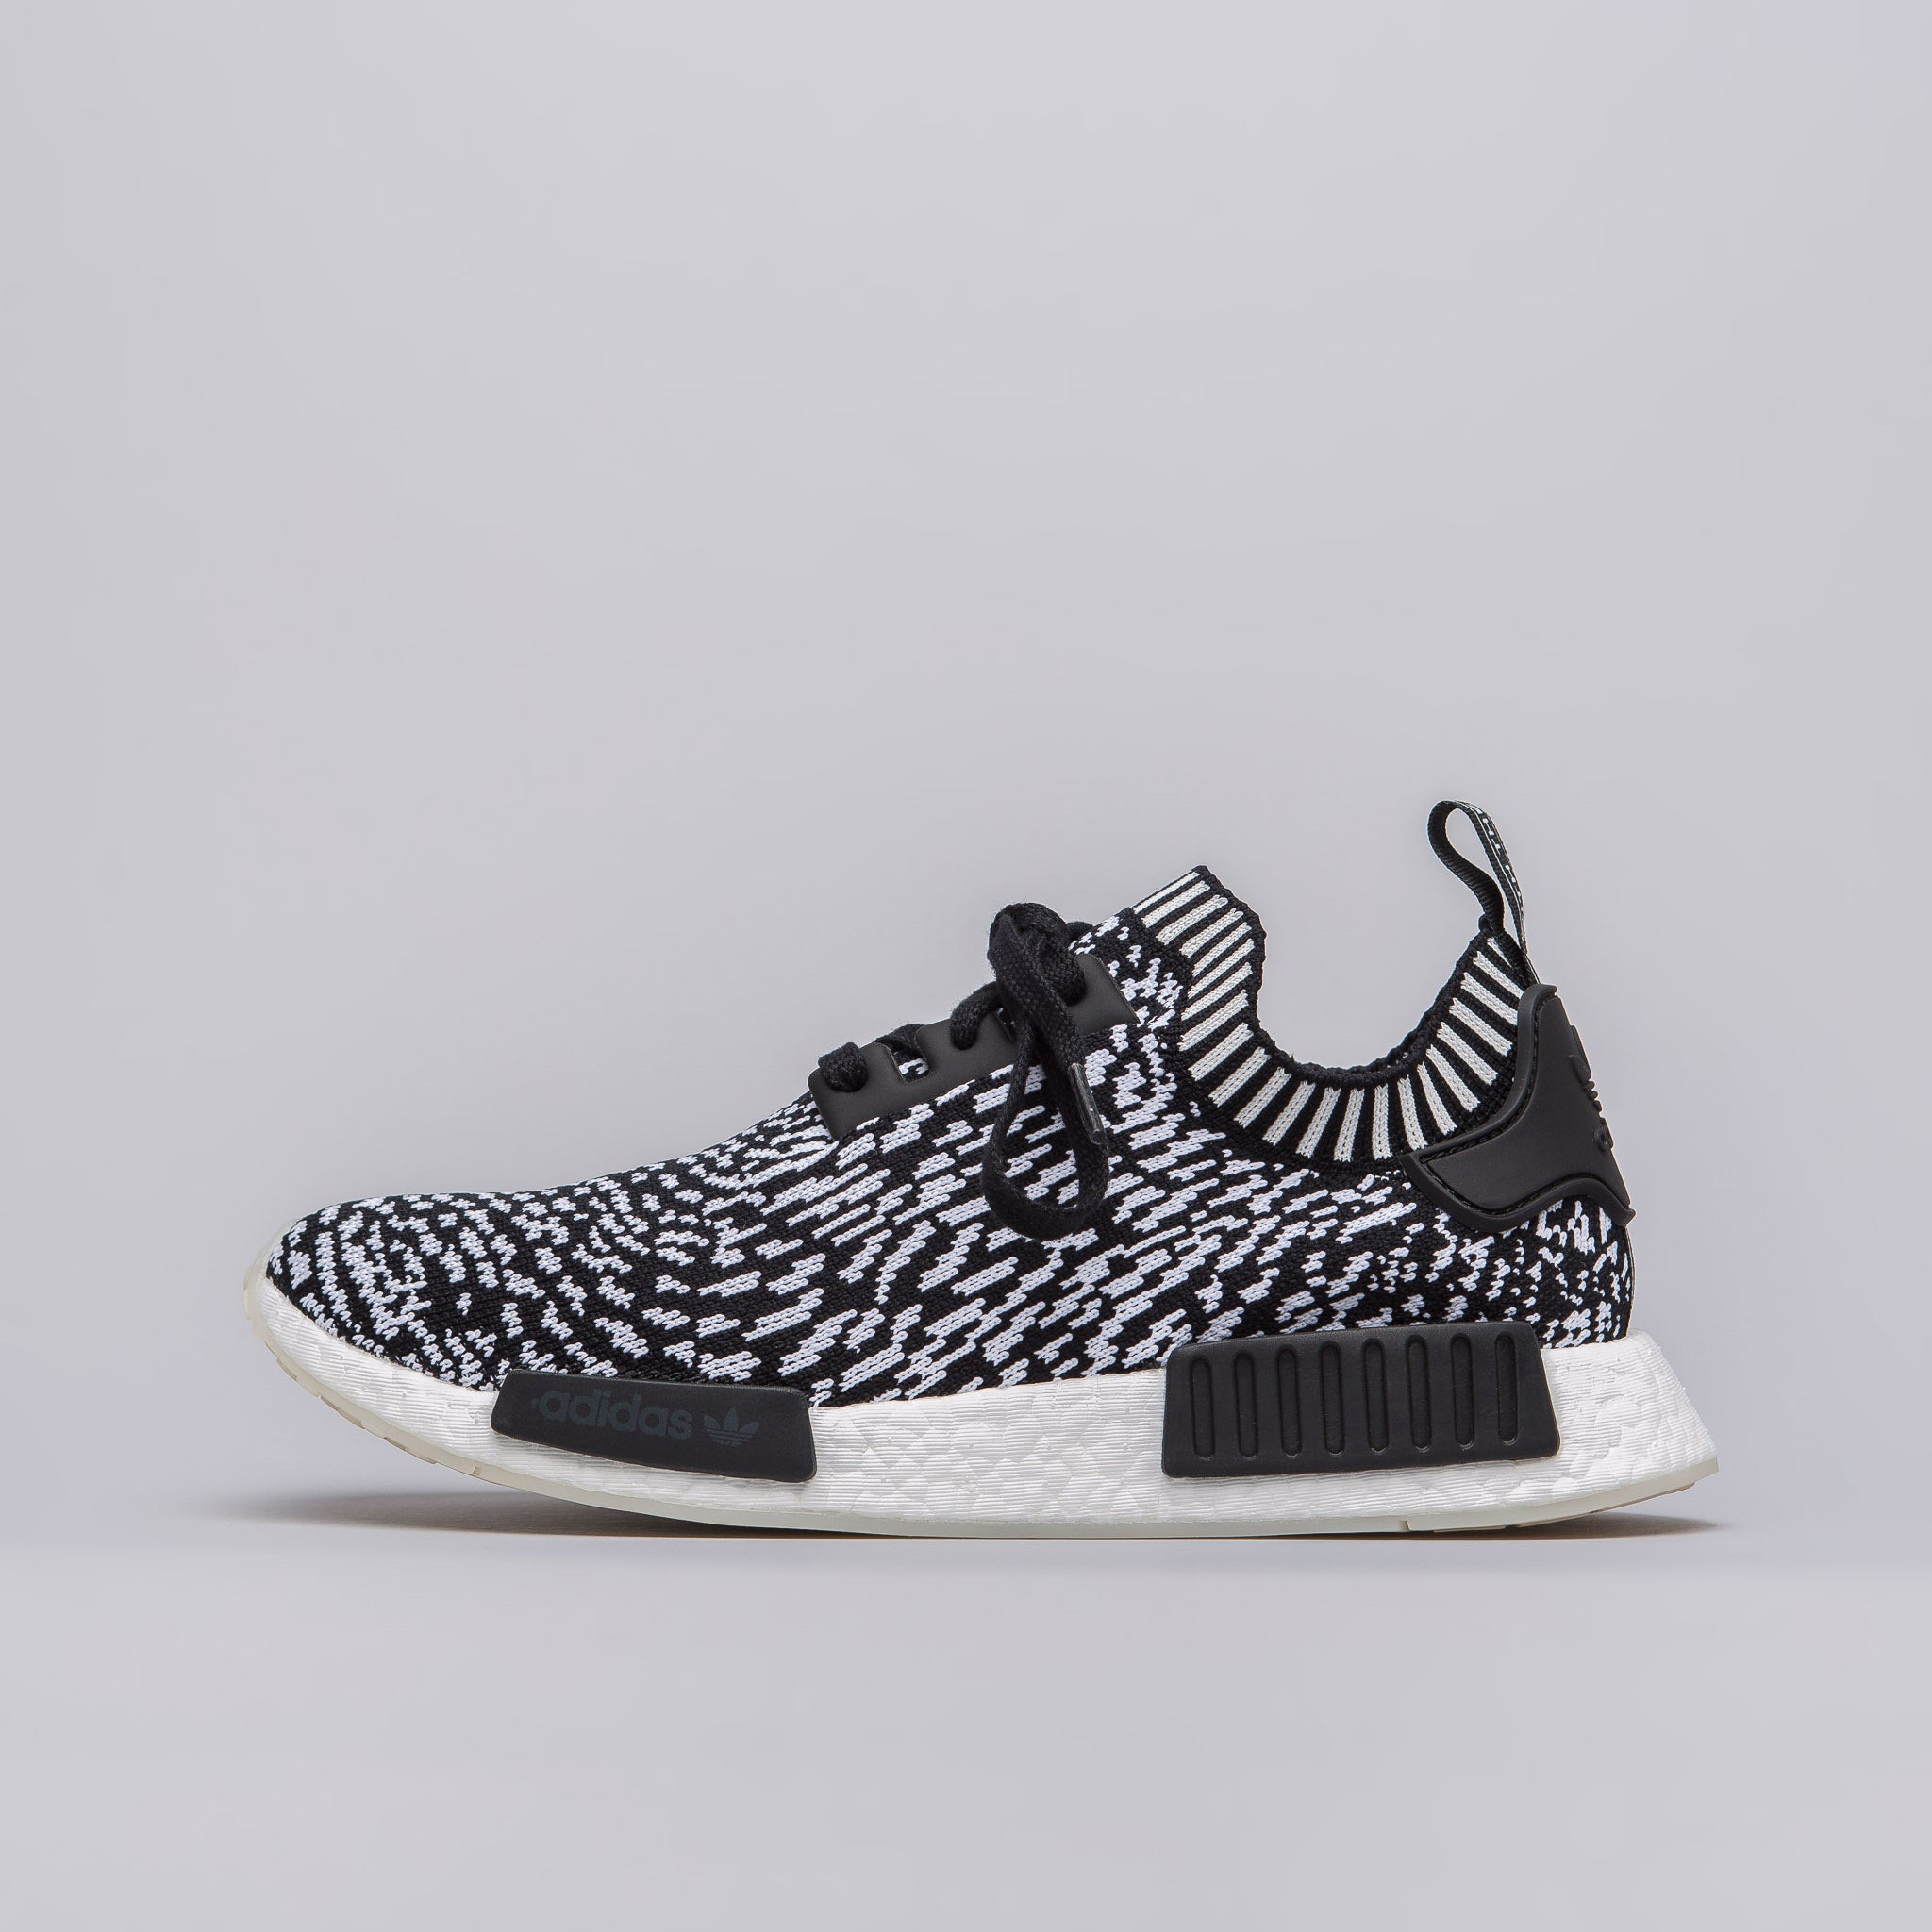 Adidas NMD R1 Trail PK Primeknit White Mountaineering WM Red